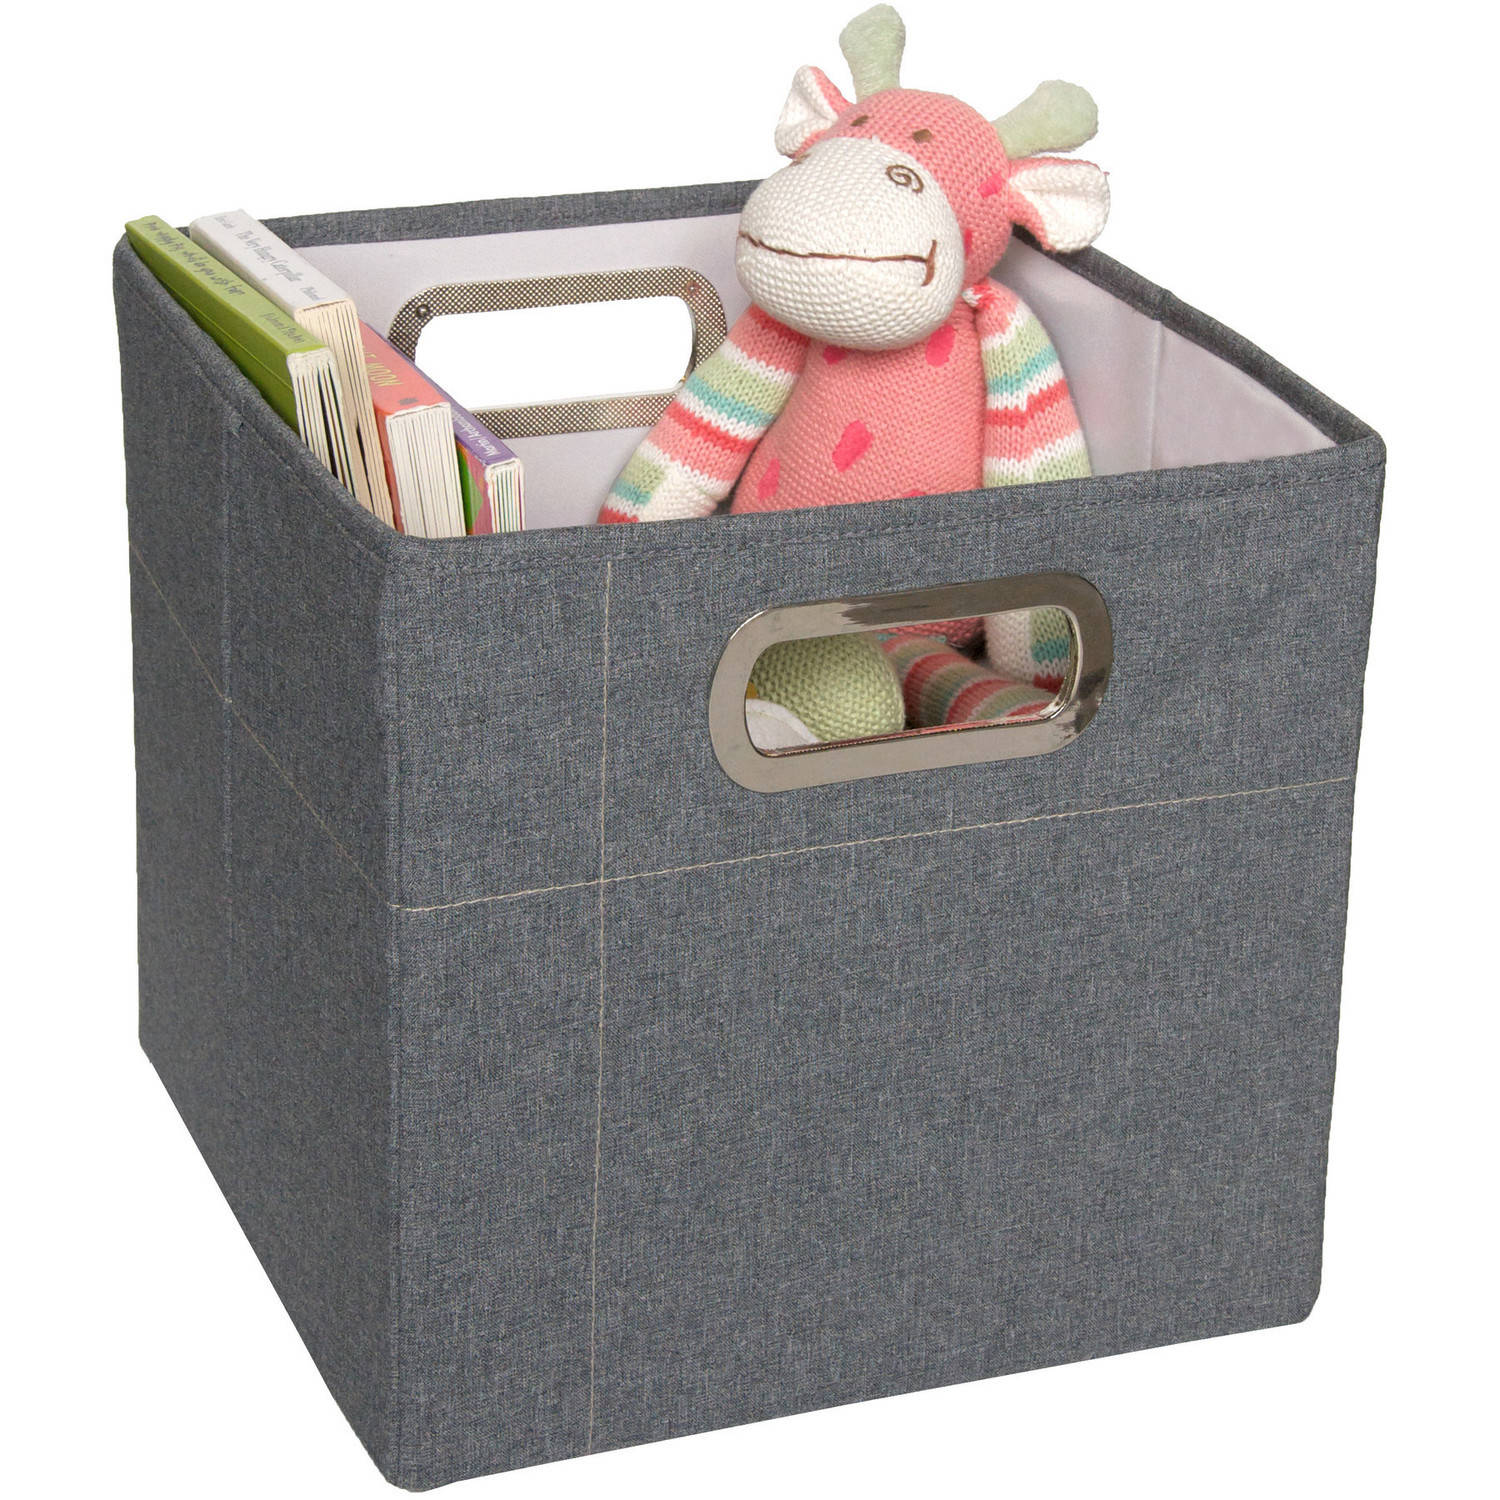 JJ Cole Tall Storage Box, Slate Heather